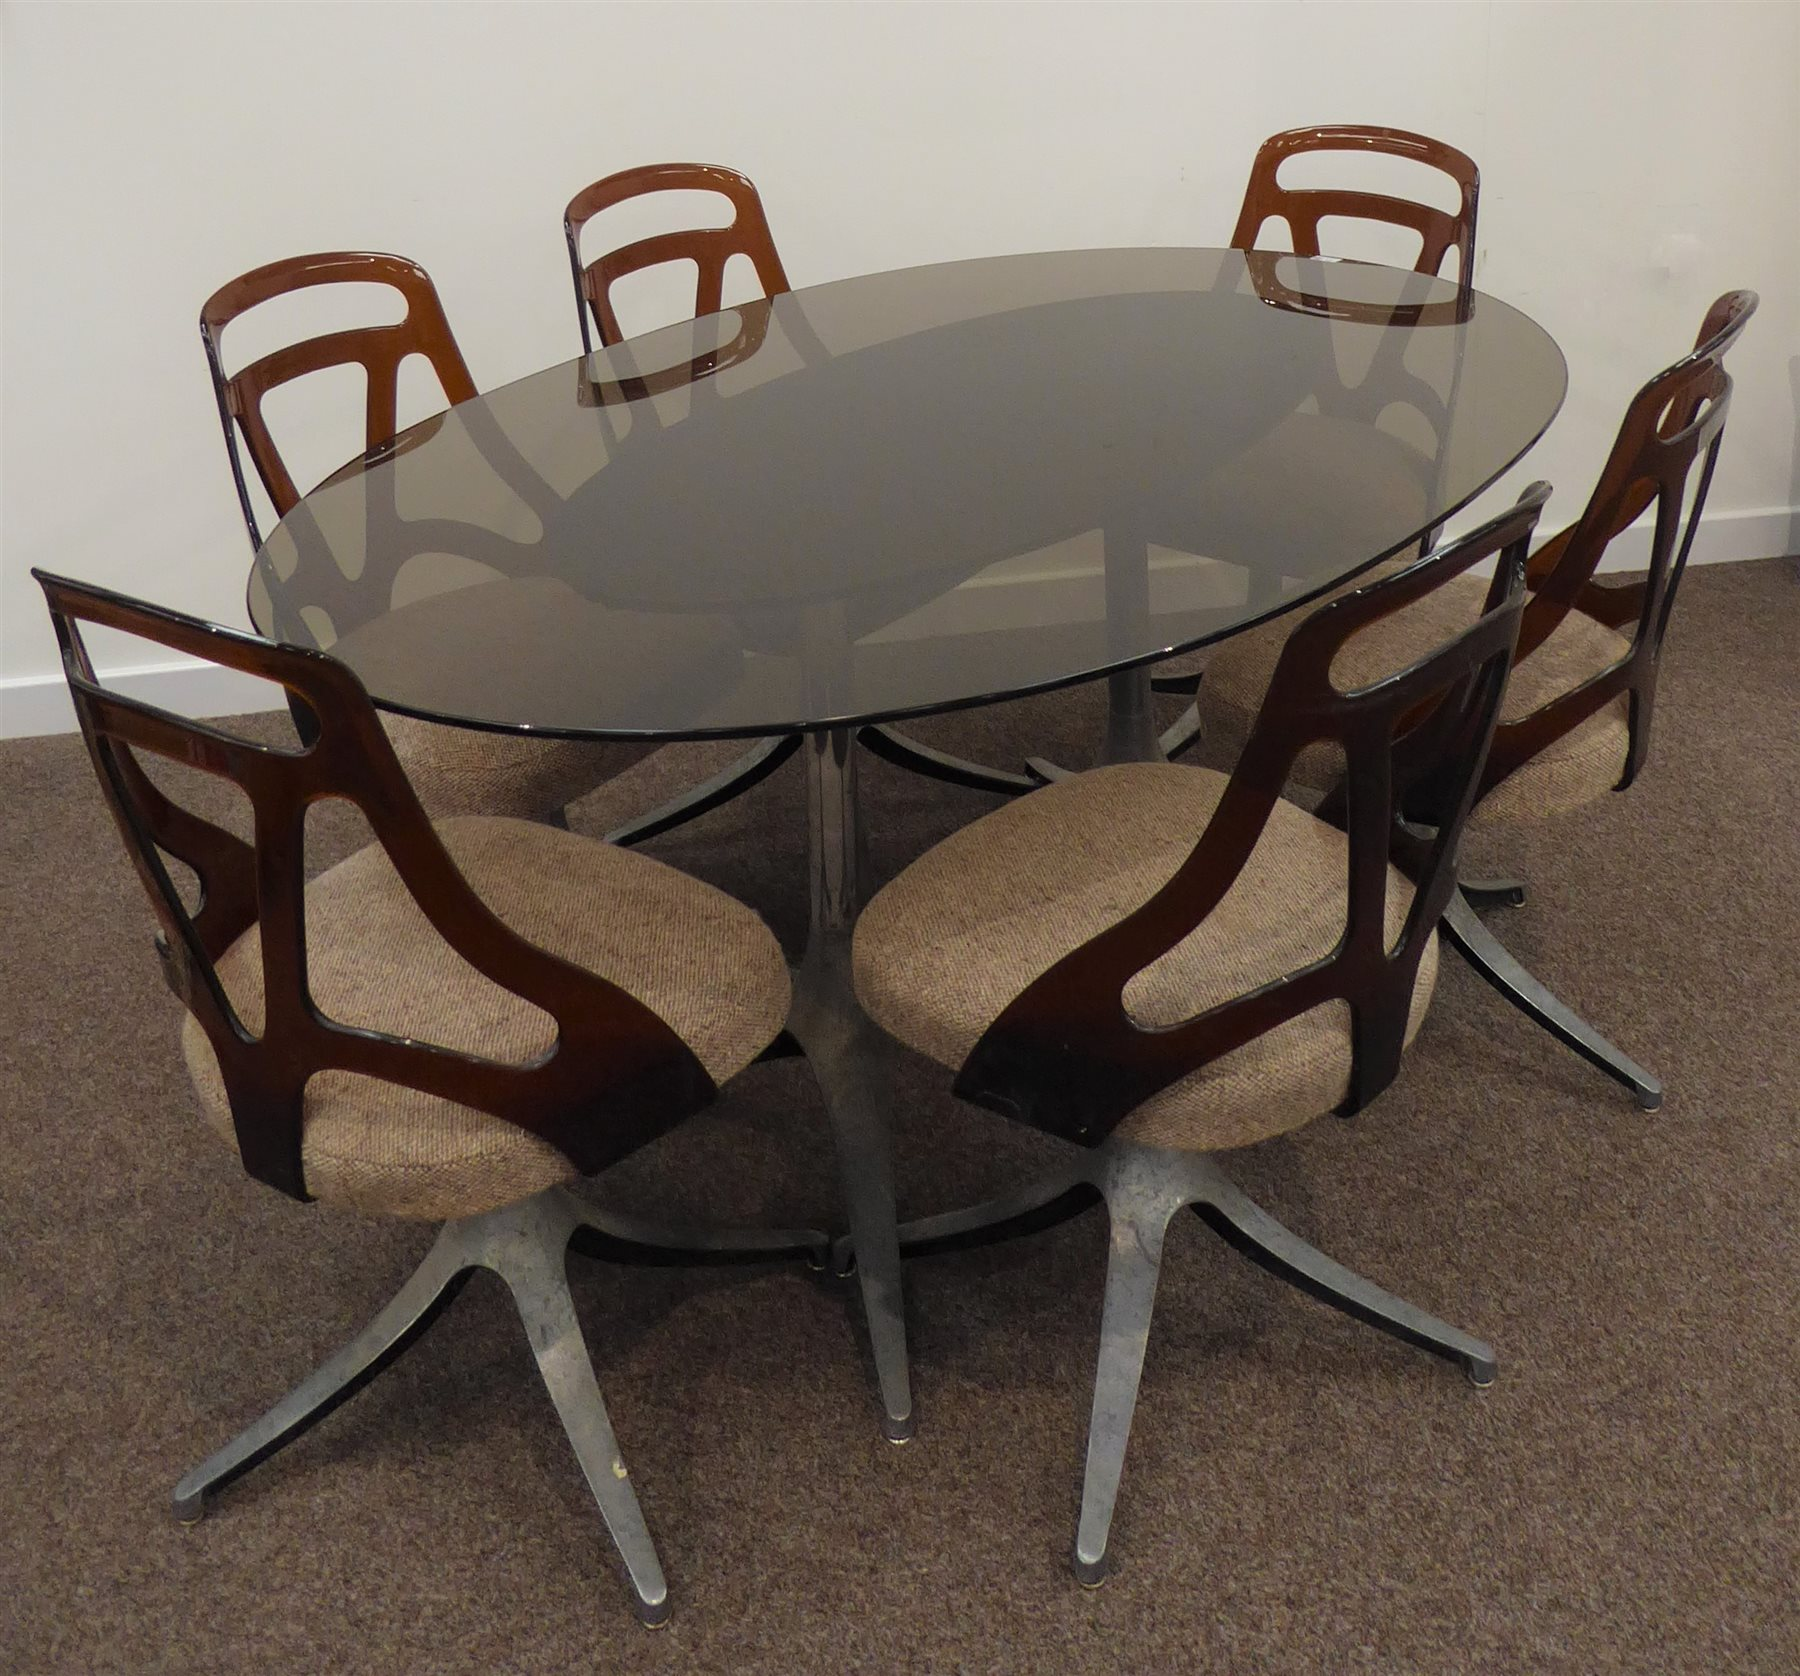 Prime 1970S Dining Table Oval Smoked Glass Top On Twin Chromed Cjindustries Chair Design For Home Cjindustriesco